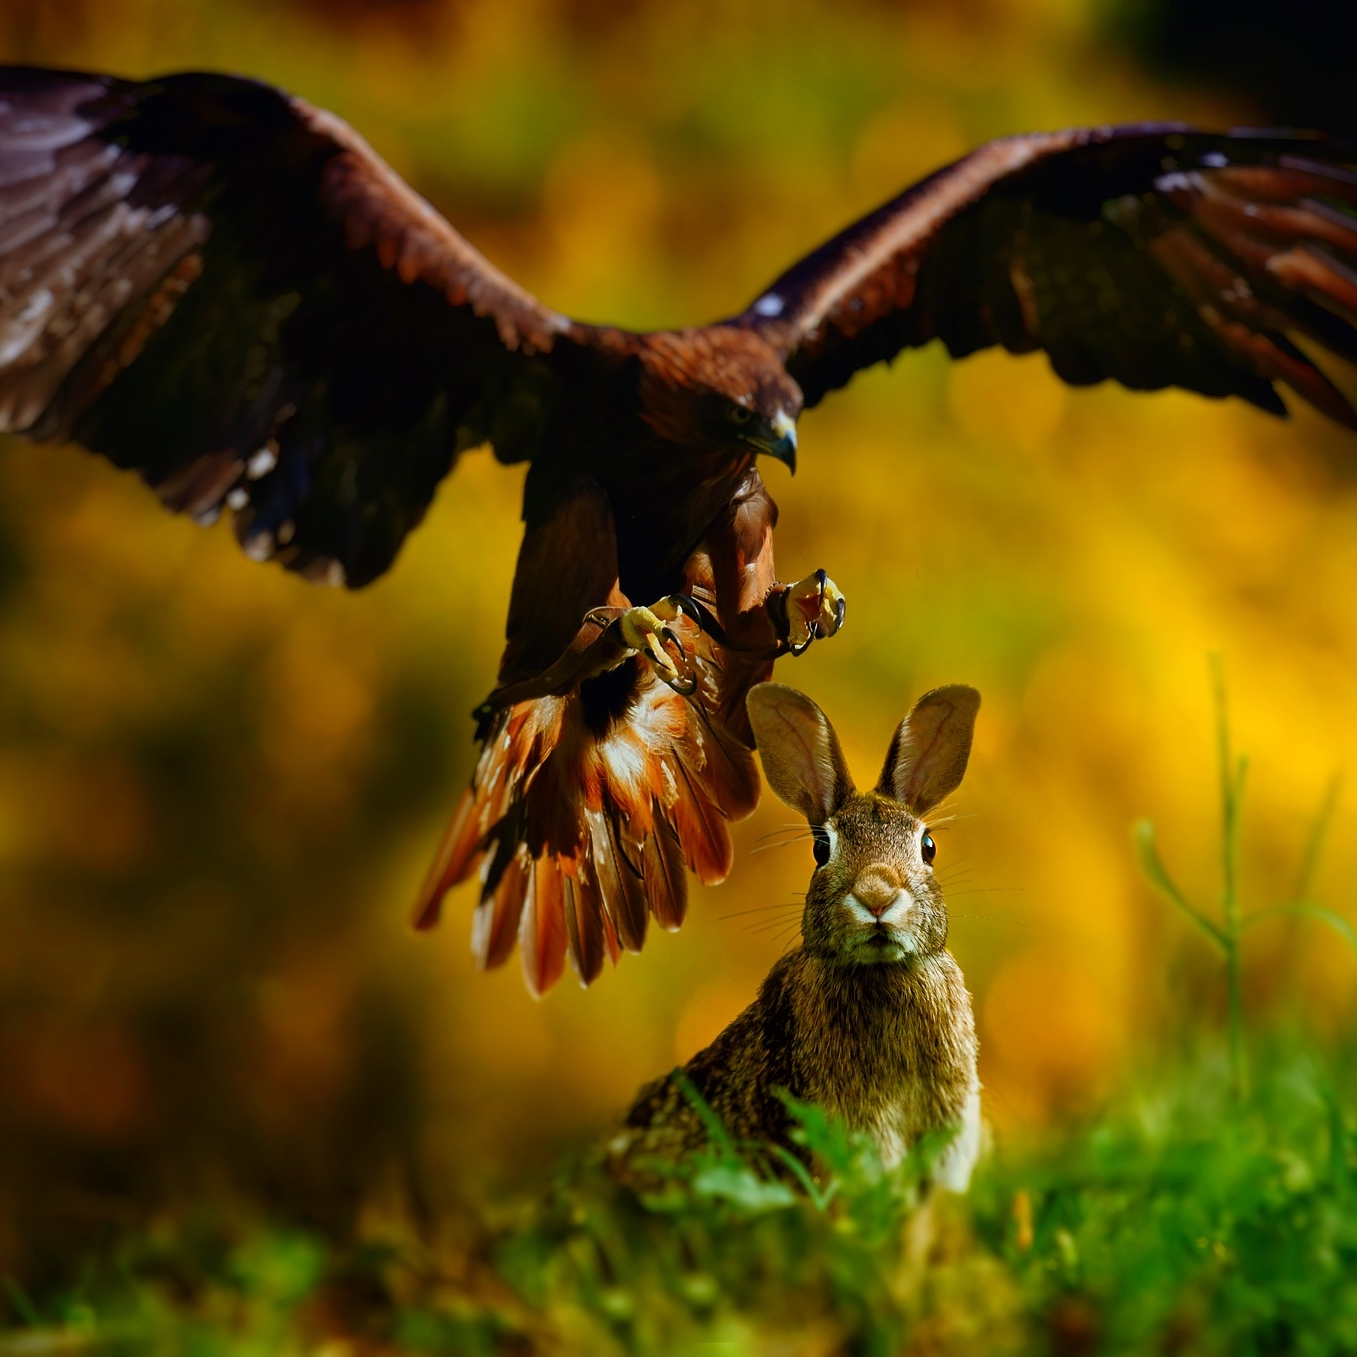 eagle-and-rabbit.jpg